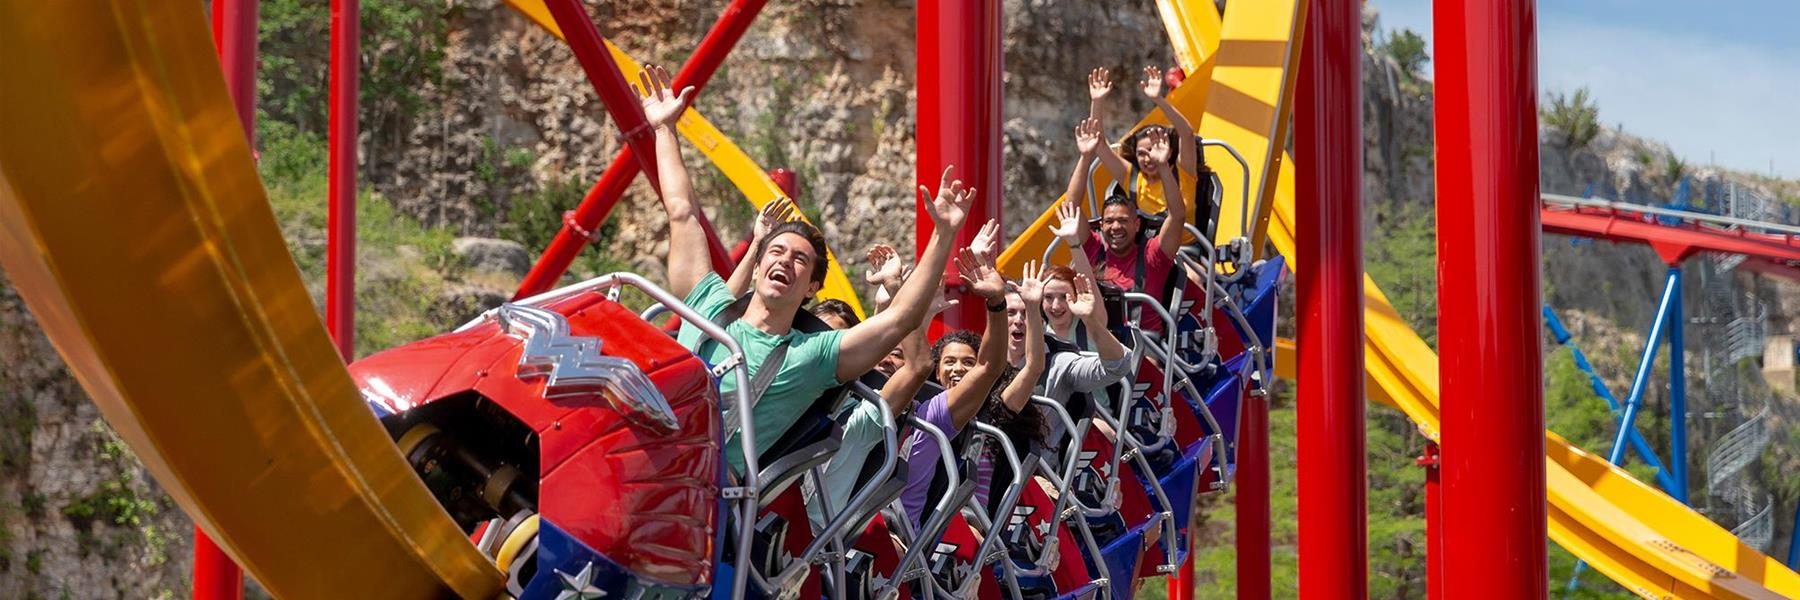 San Antonio Multi-Attraction Explorer Pass in San Antonio, Texas